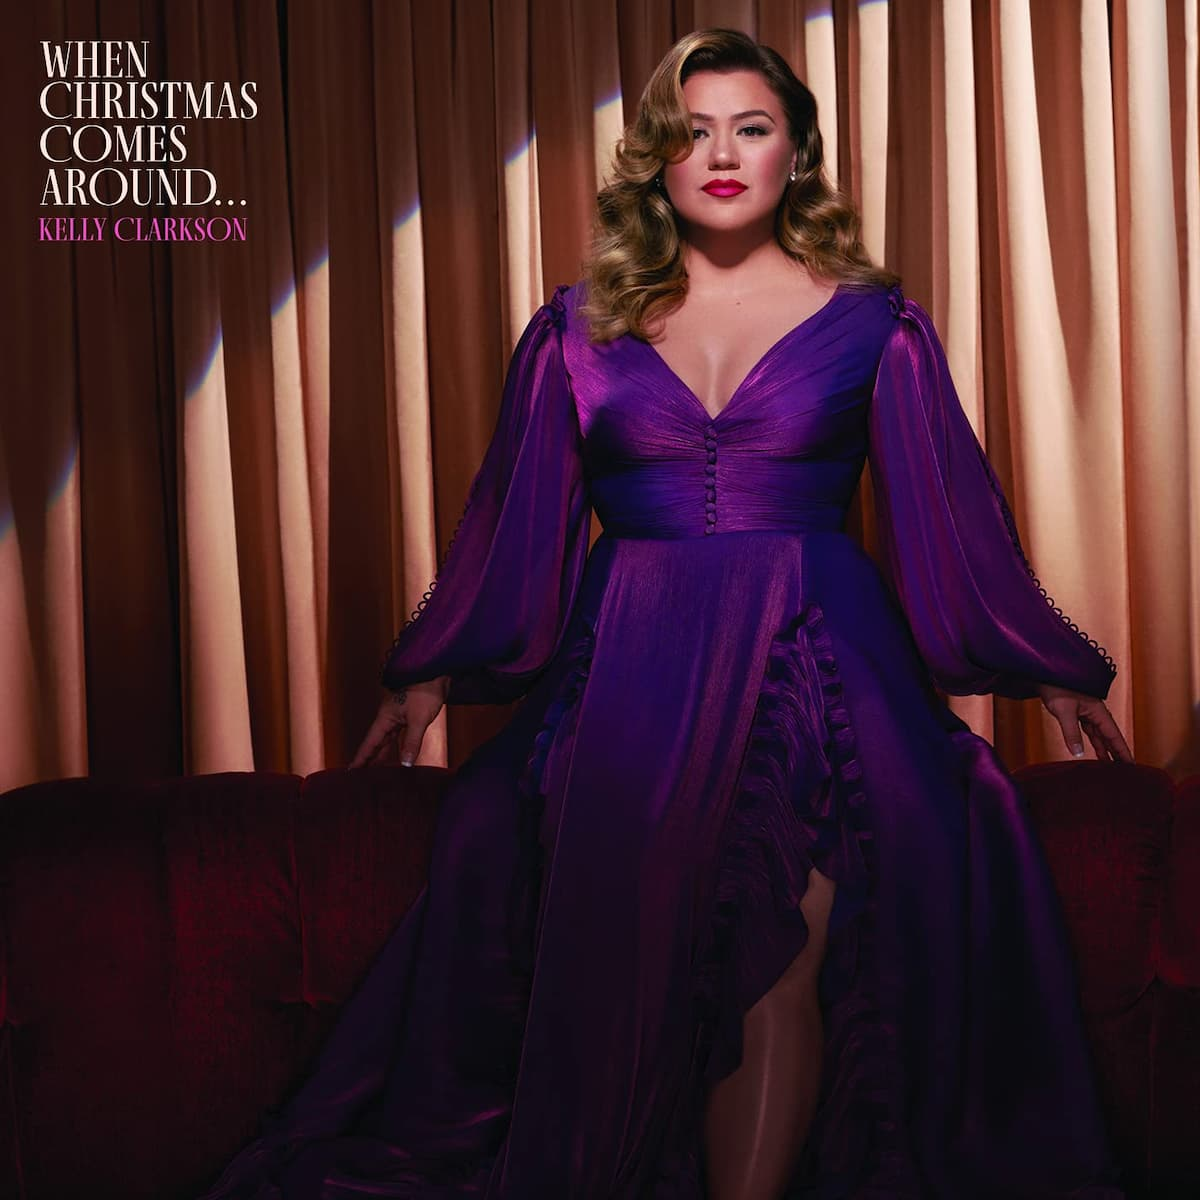 """Kelly Clarkson CD """"When Christmas Comes Around"""" 2021"""